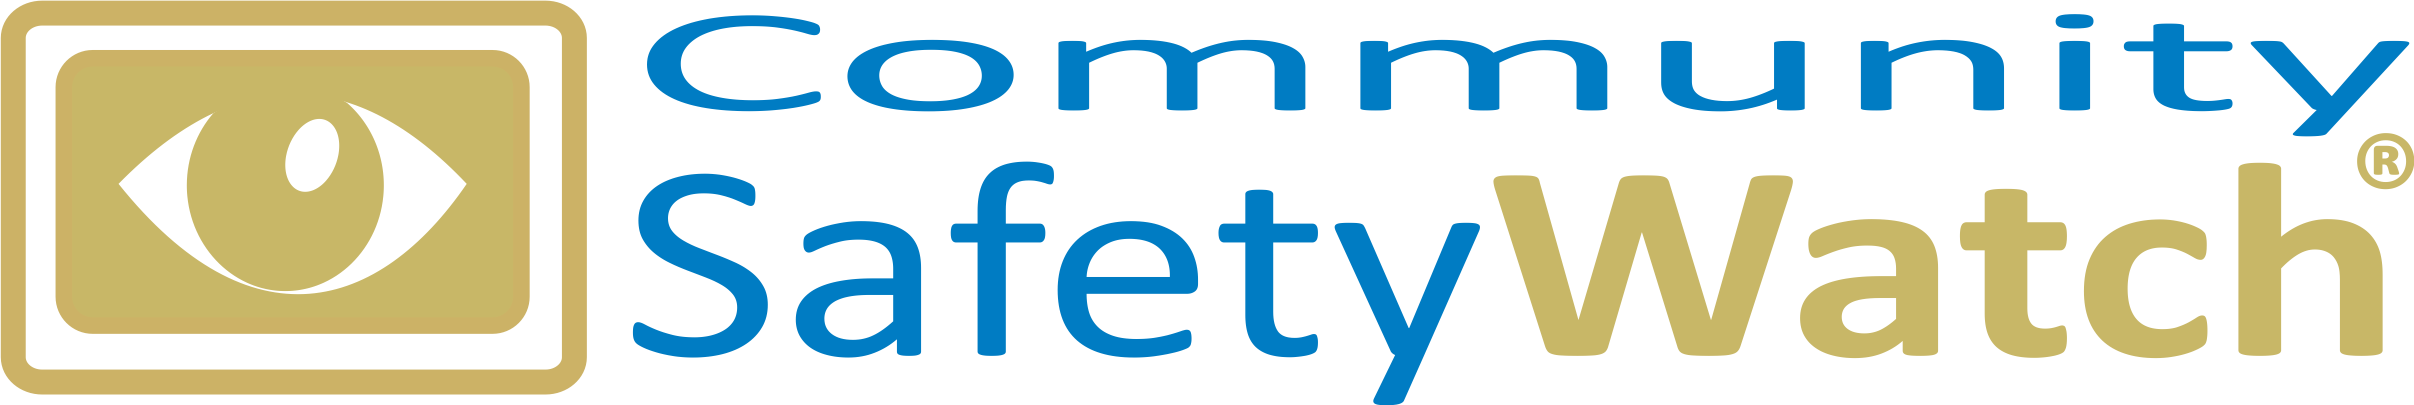 community-safety-watch